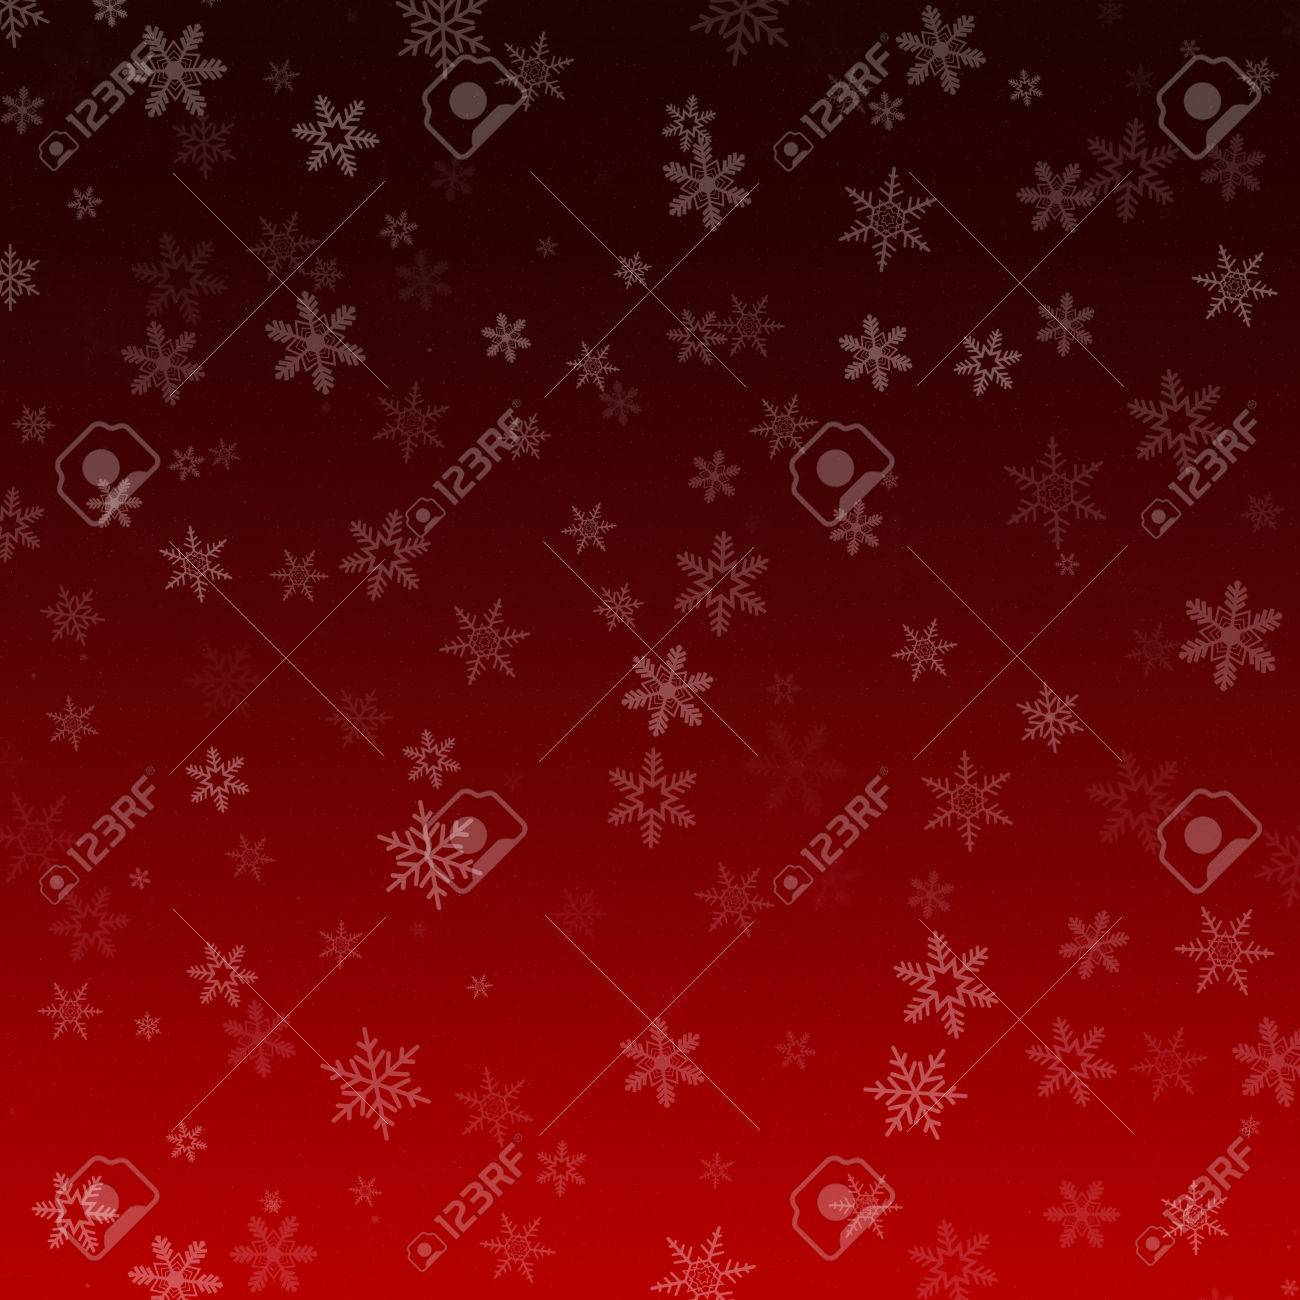 red abstract vertical gradient snowflake christmas background stock